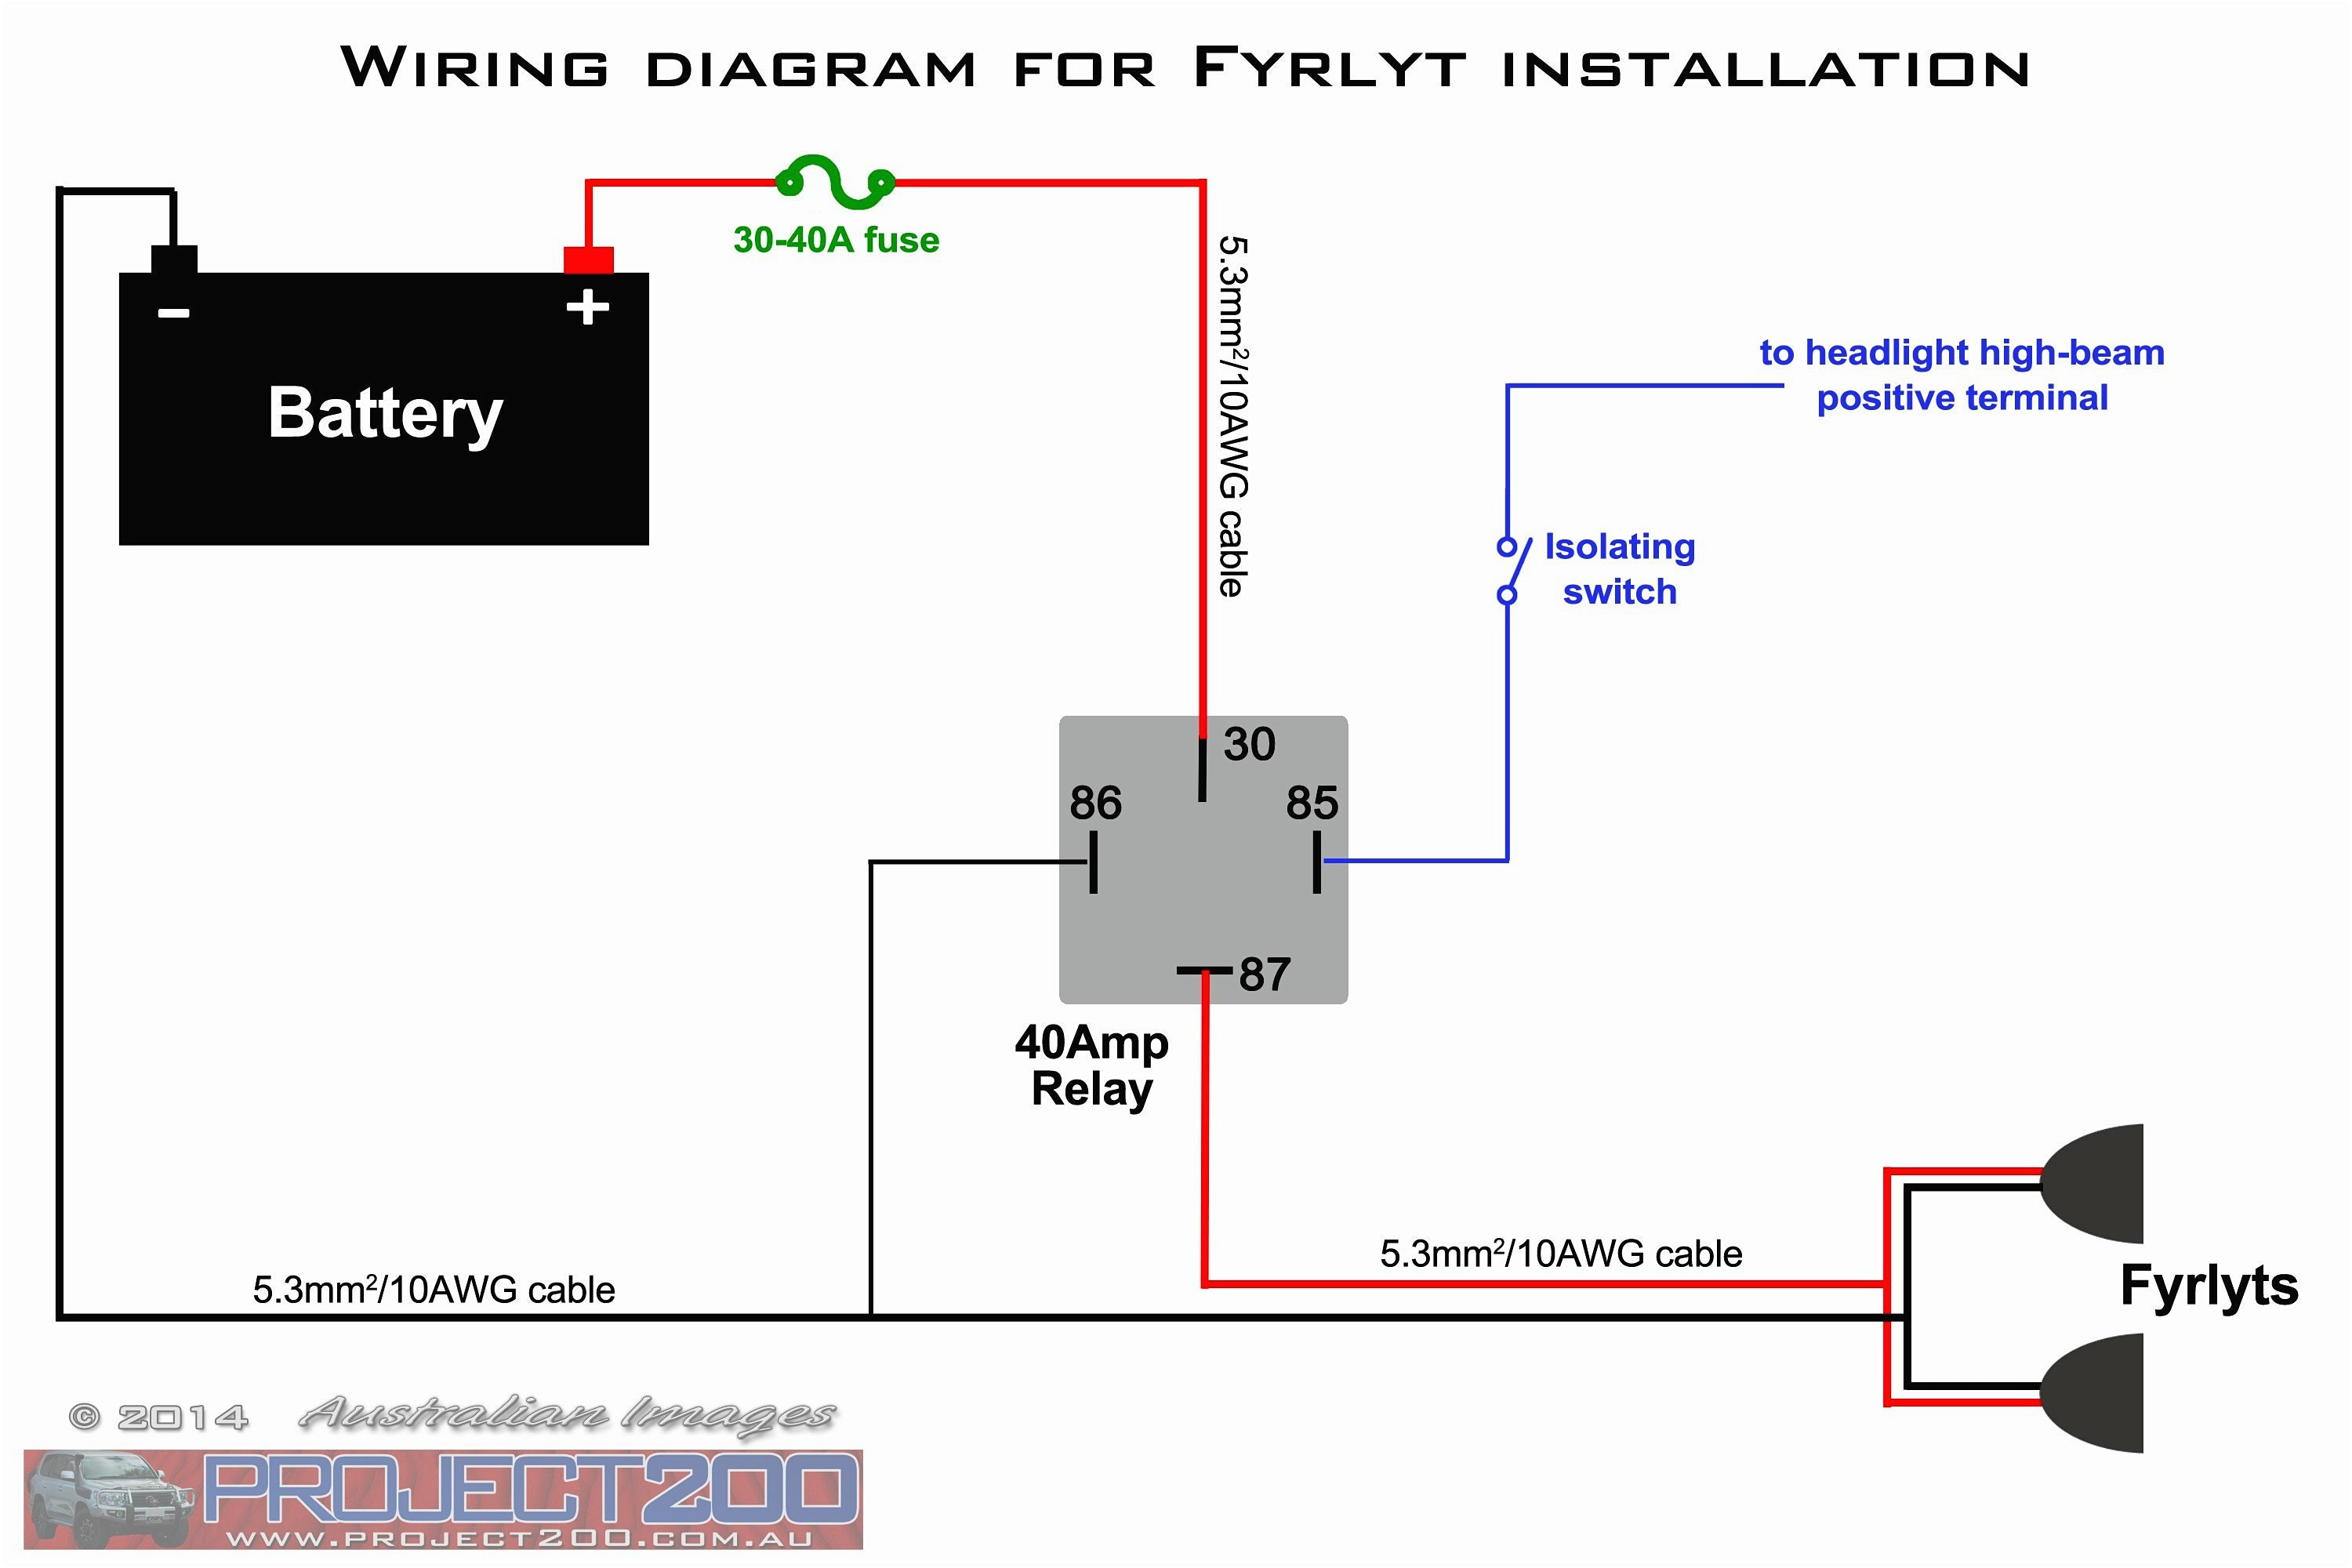 12 volt relay wiring diagram Download-Caravan Relay Wiring Diagram Valid Elegant 12 Volt Relay Wiring Diagram Diagram 1-i